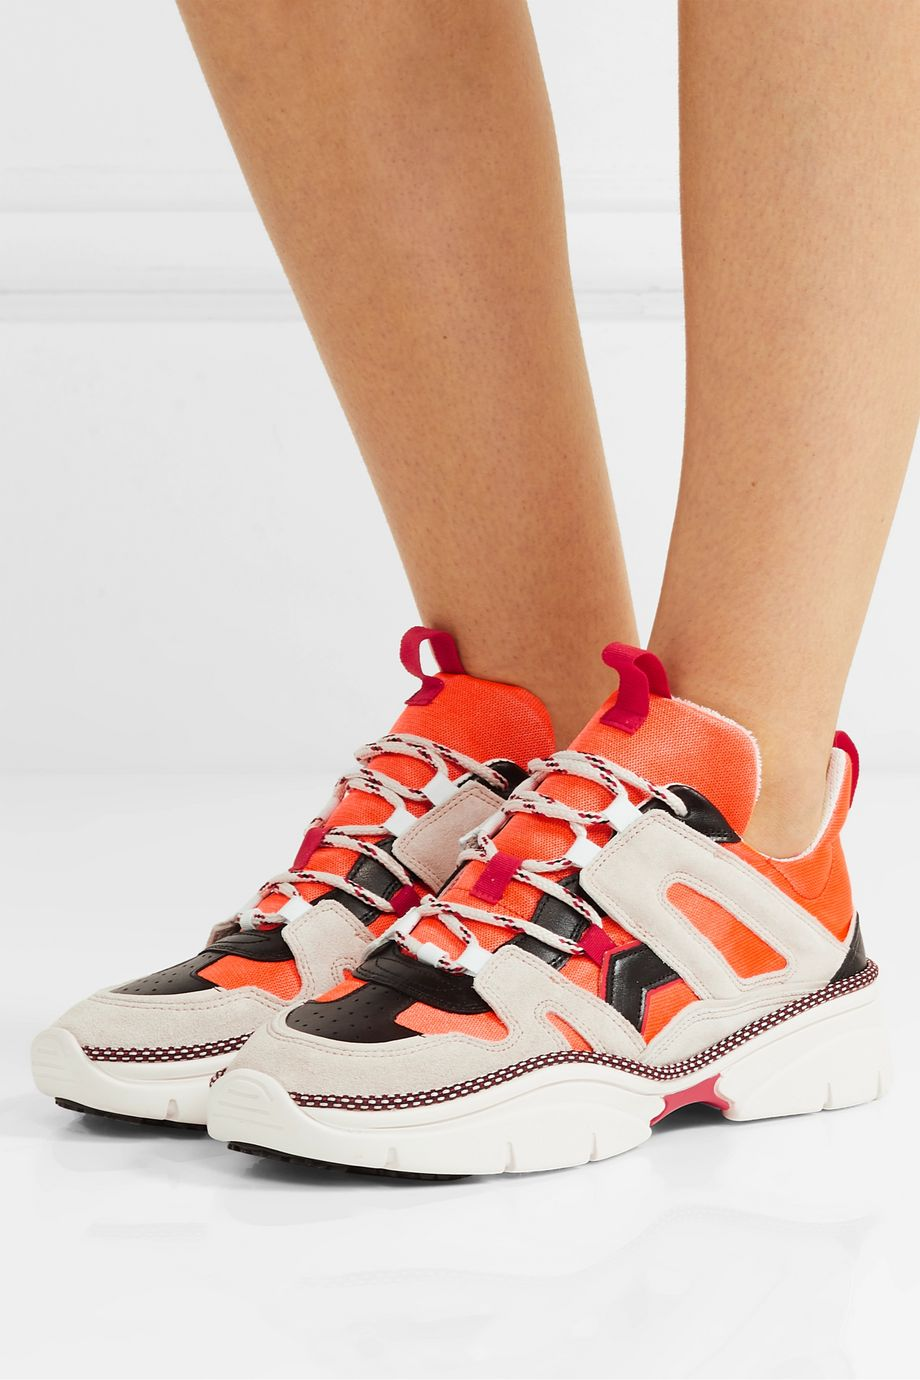 Isabel Marant Kindsay suede, leather and mesh sneakers